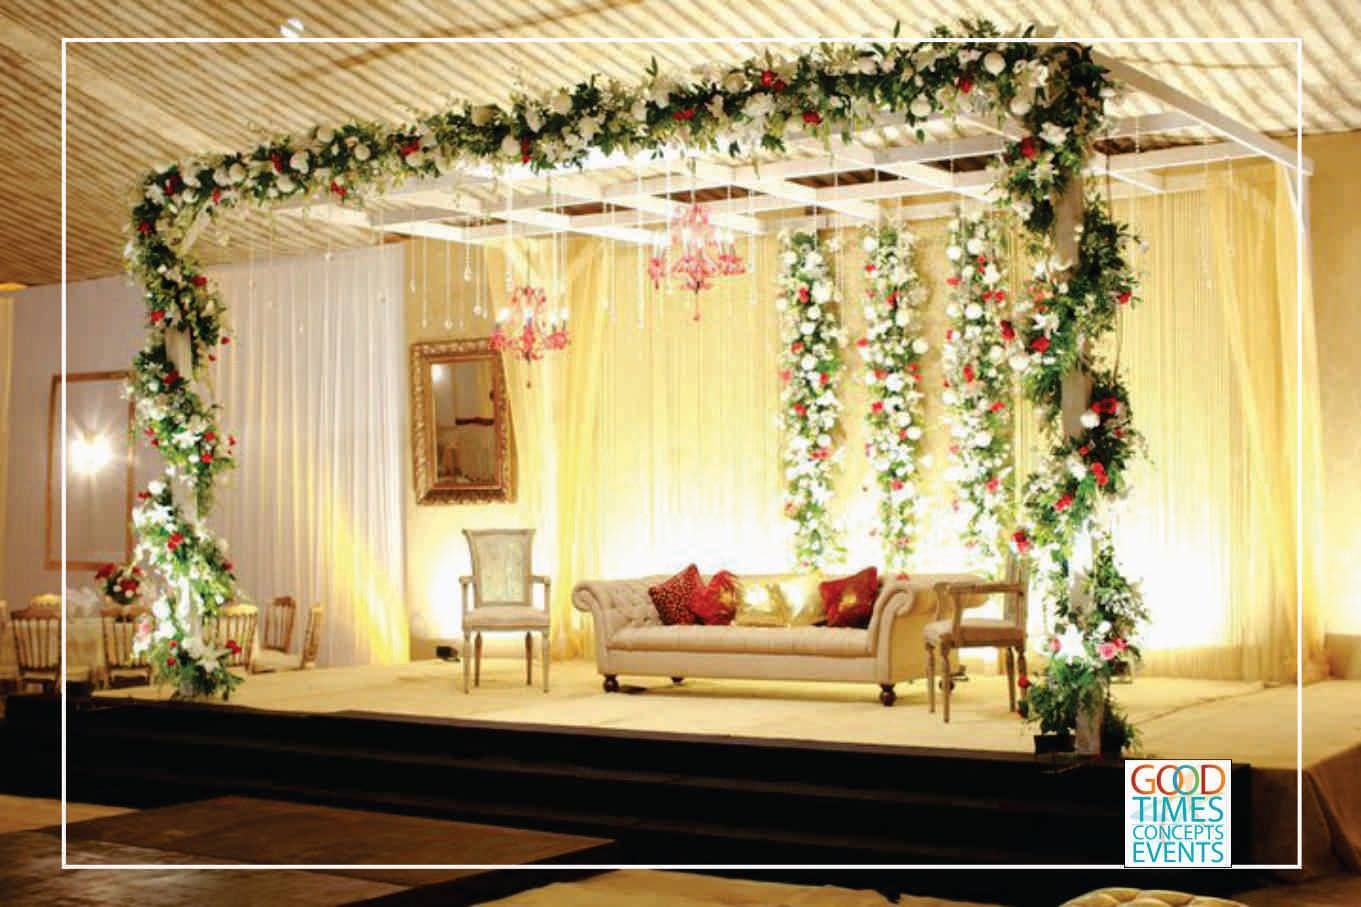 Wedding stage decoration delhi  Best Events Management Company in Delhi Good Times Concepts Events